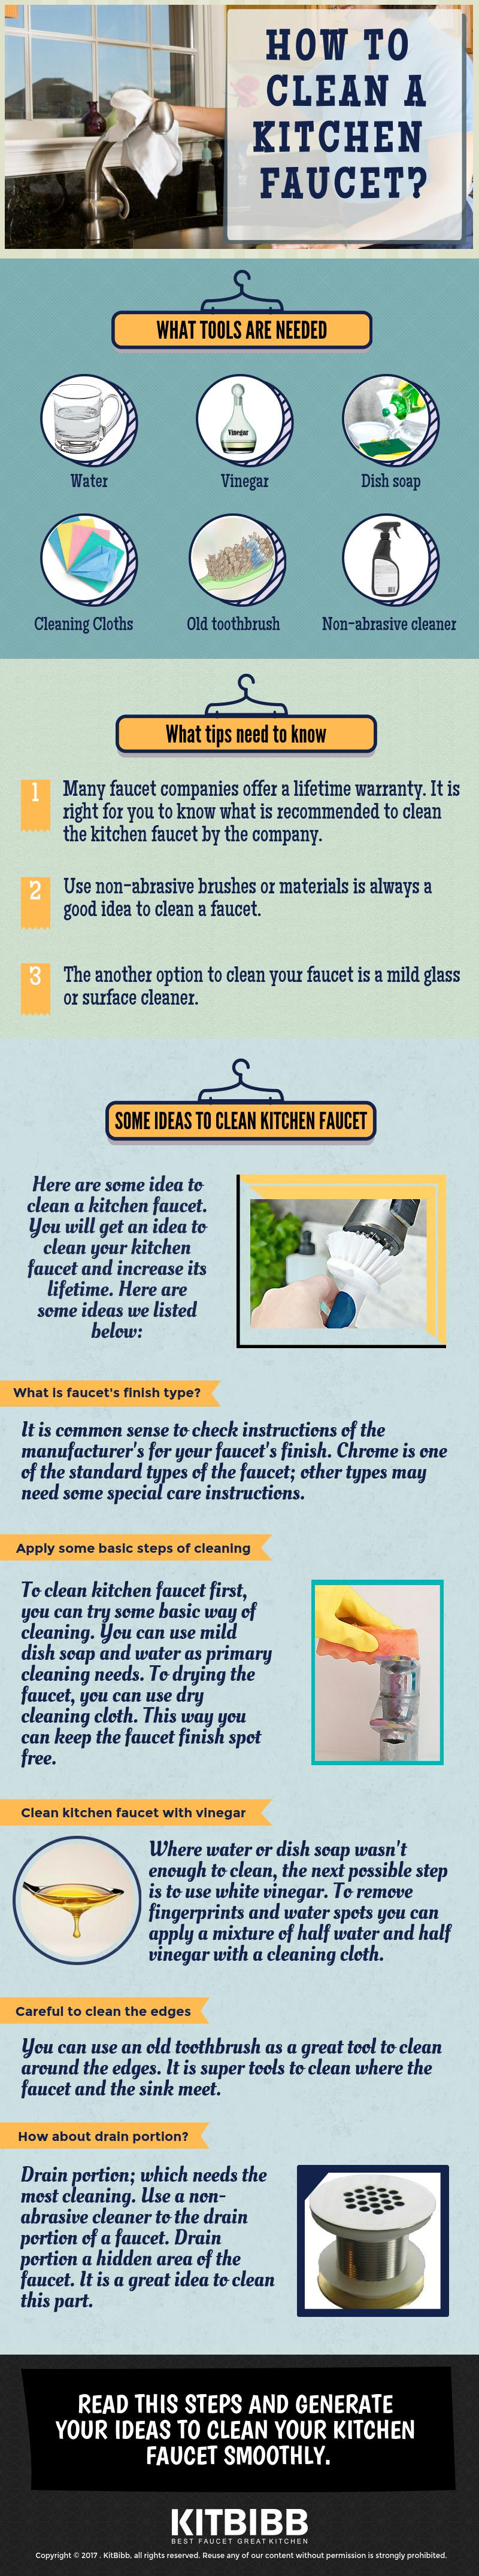 How To Clean Kitchen Faucet - Make Your Faucets Durability Double!